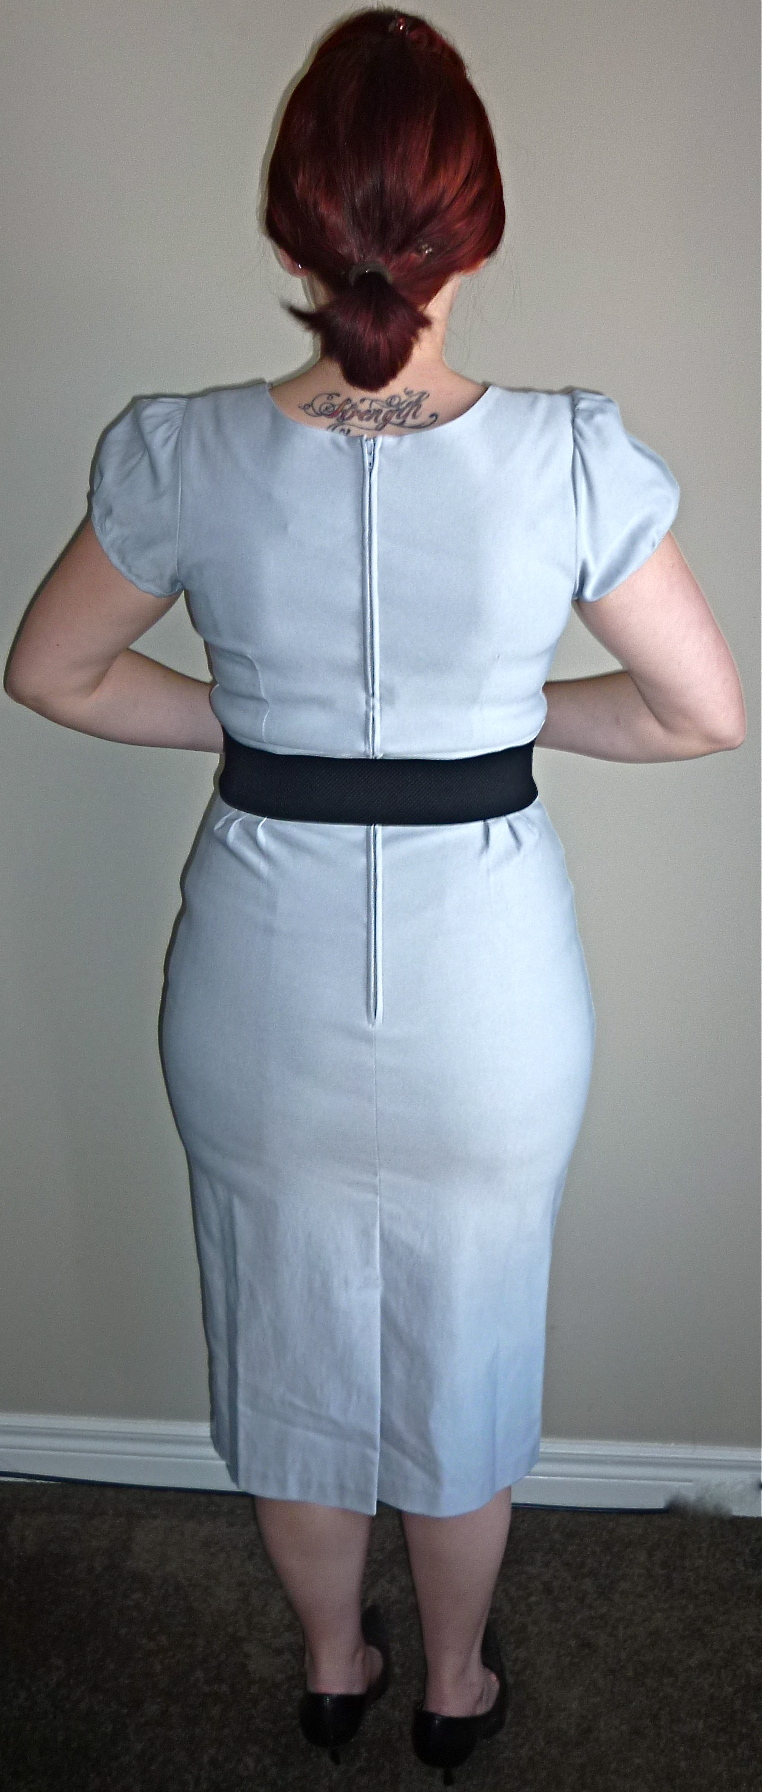 suspender bumps Back View